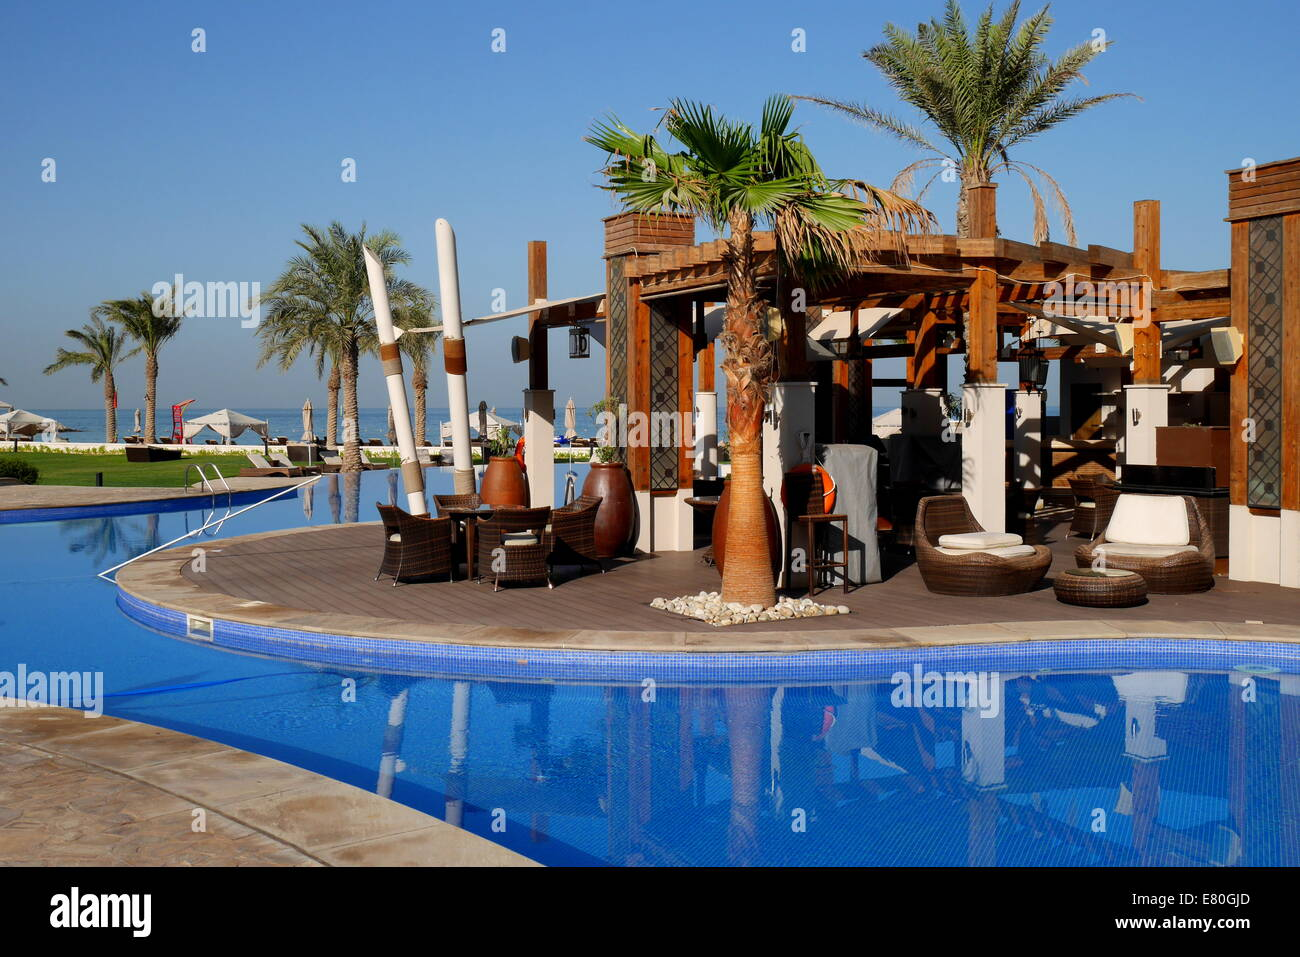 Pool Bar And Swimming Pool At The Beach Resort Of The Hotel Sofitel Stock Photo Royalty Free